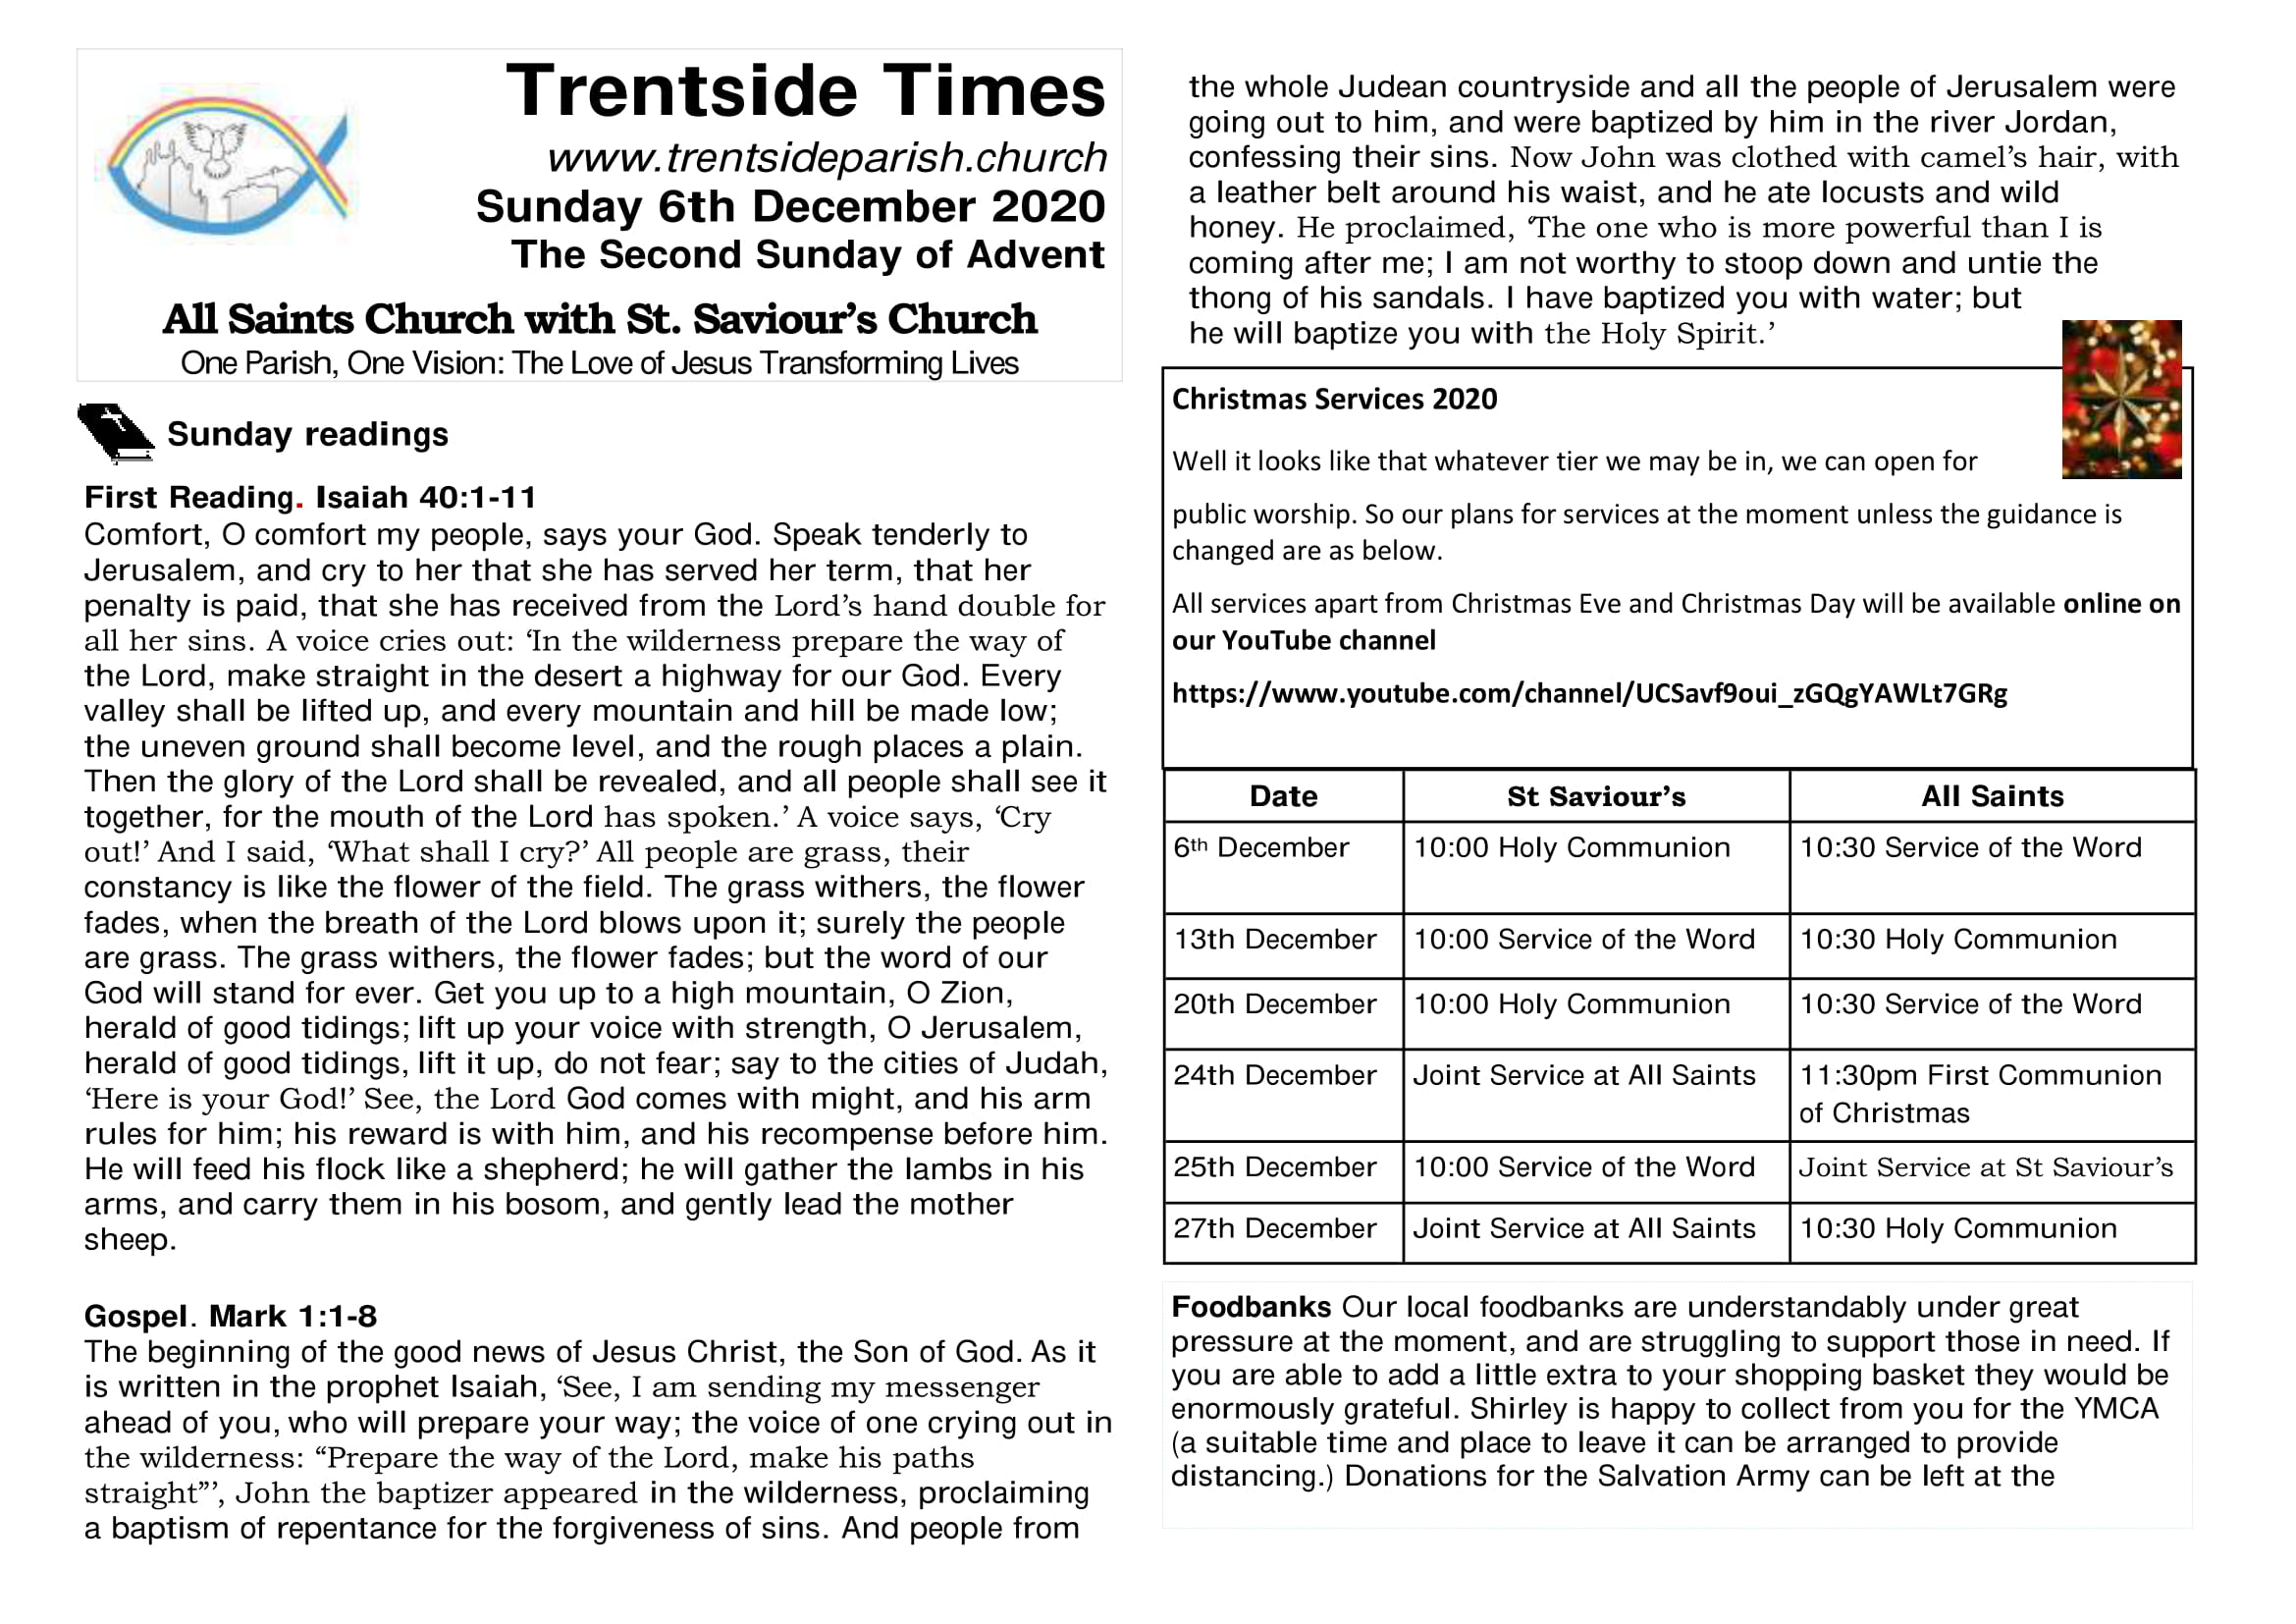 6th December Trentside Notices-page 1